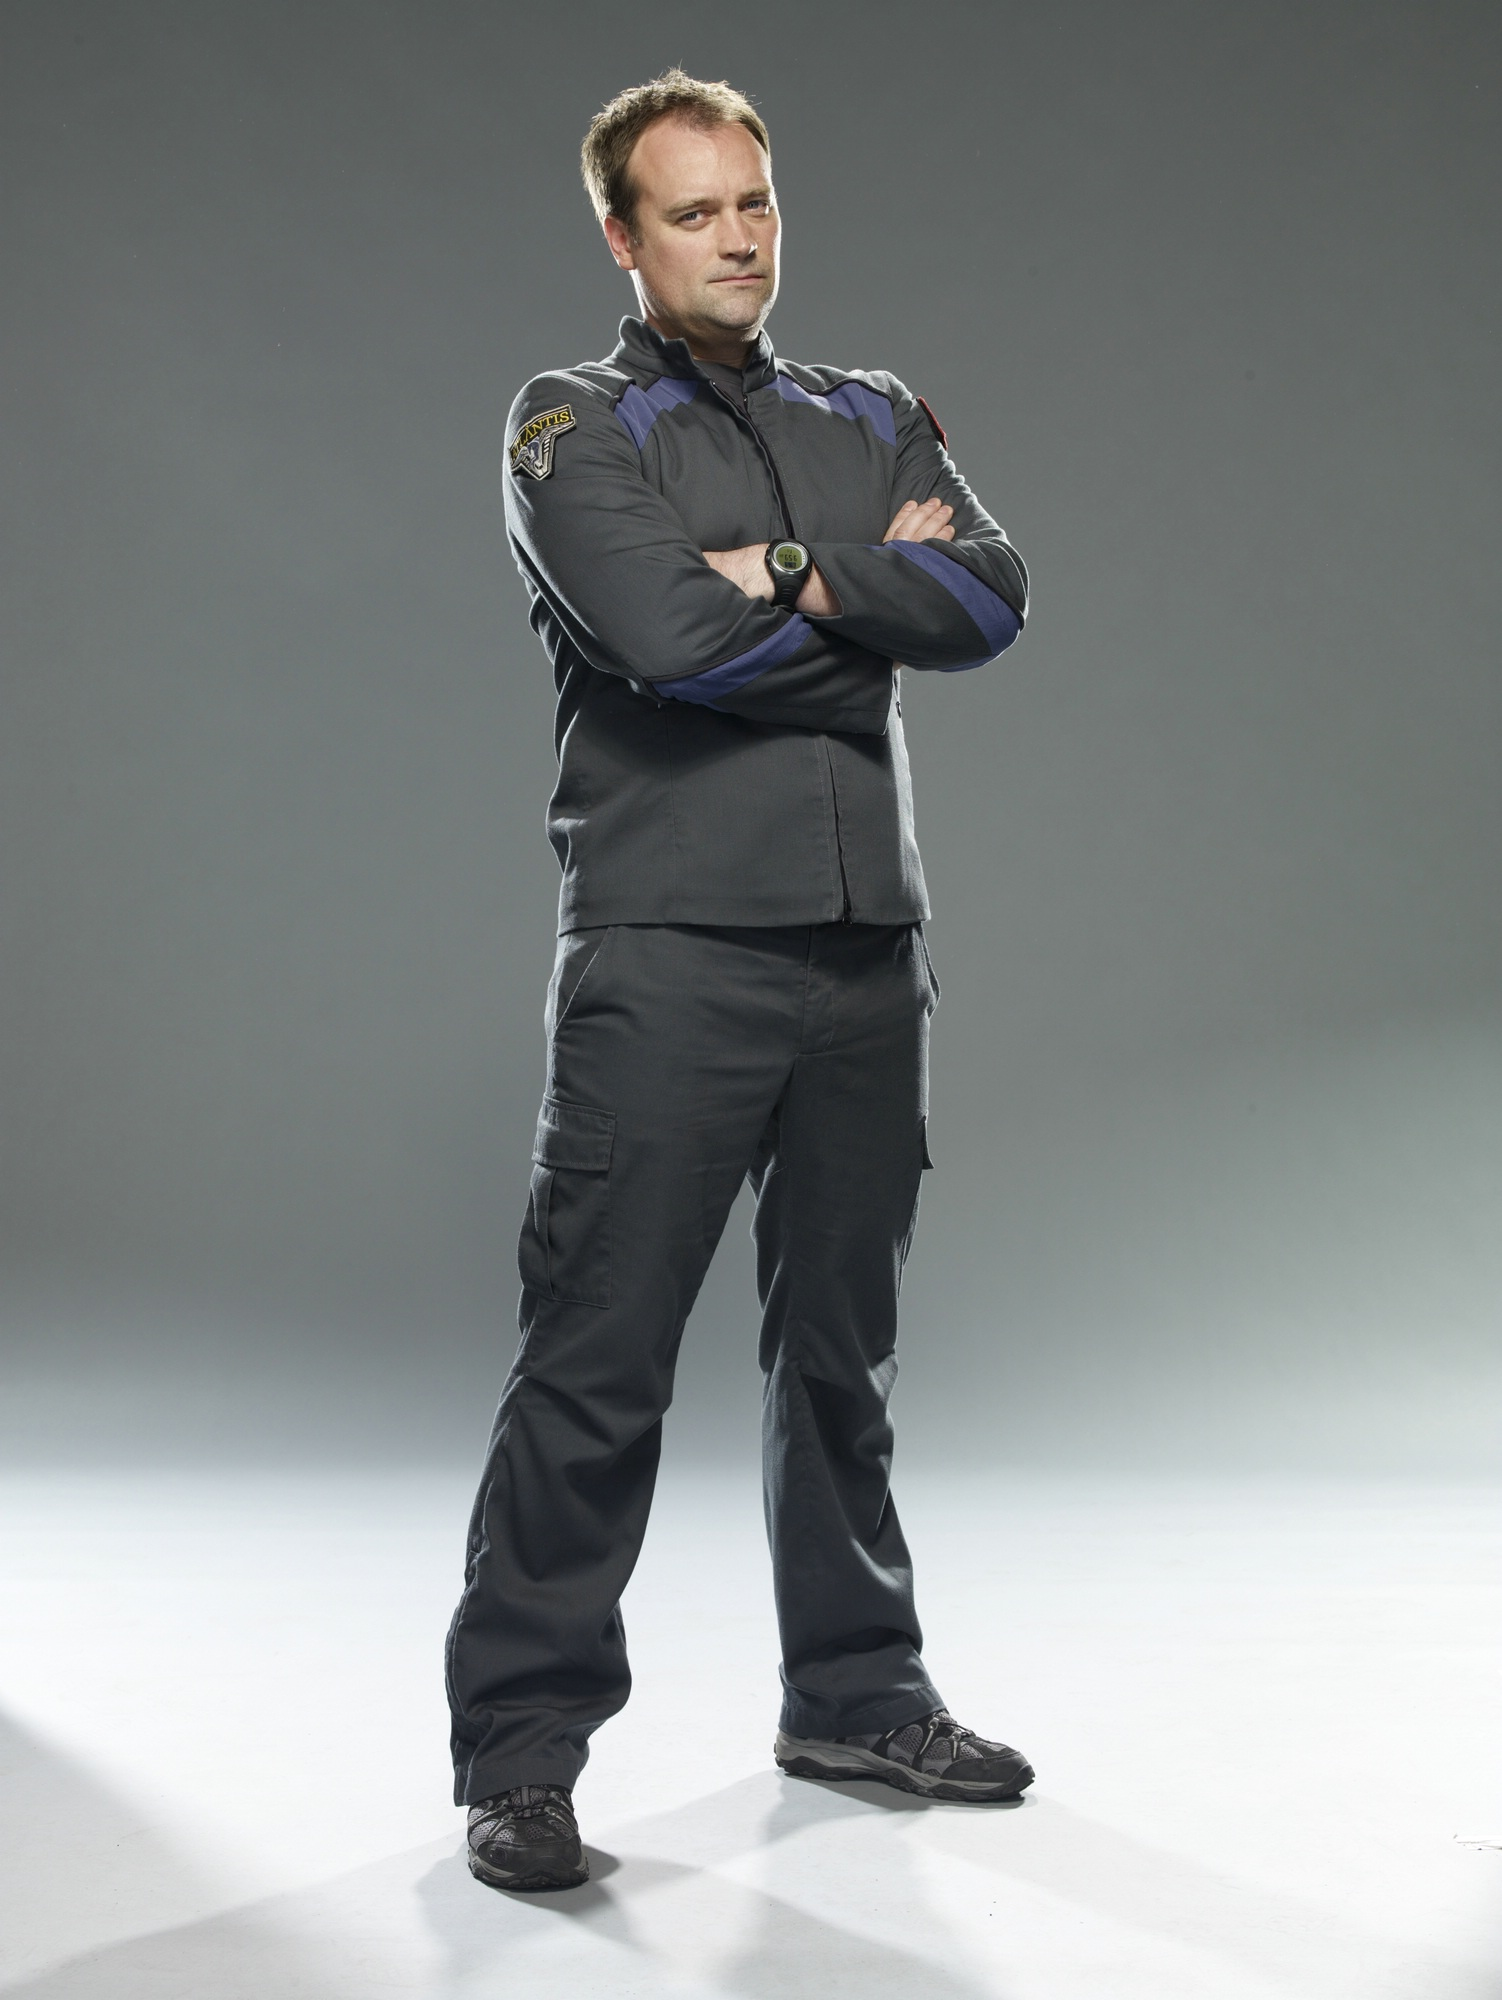 david hewlett height